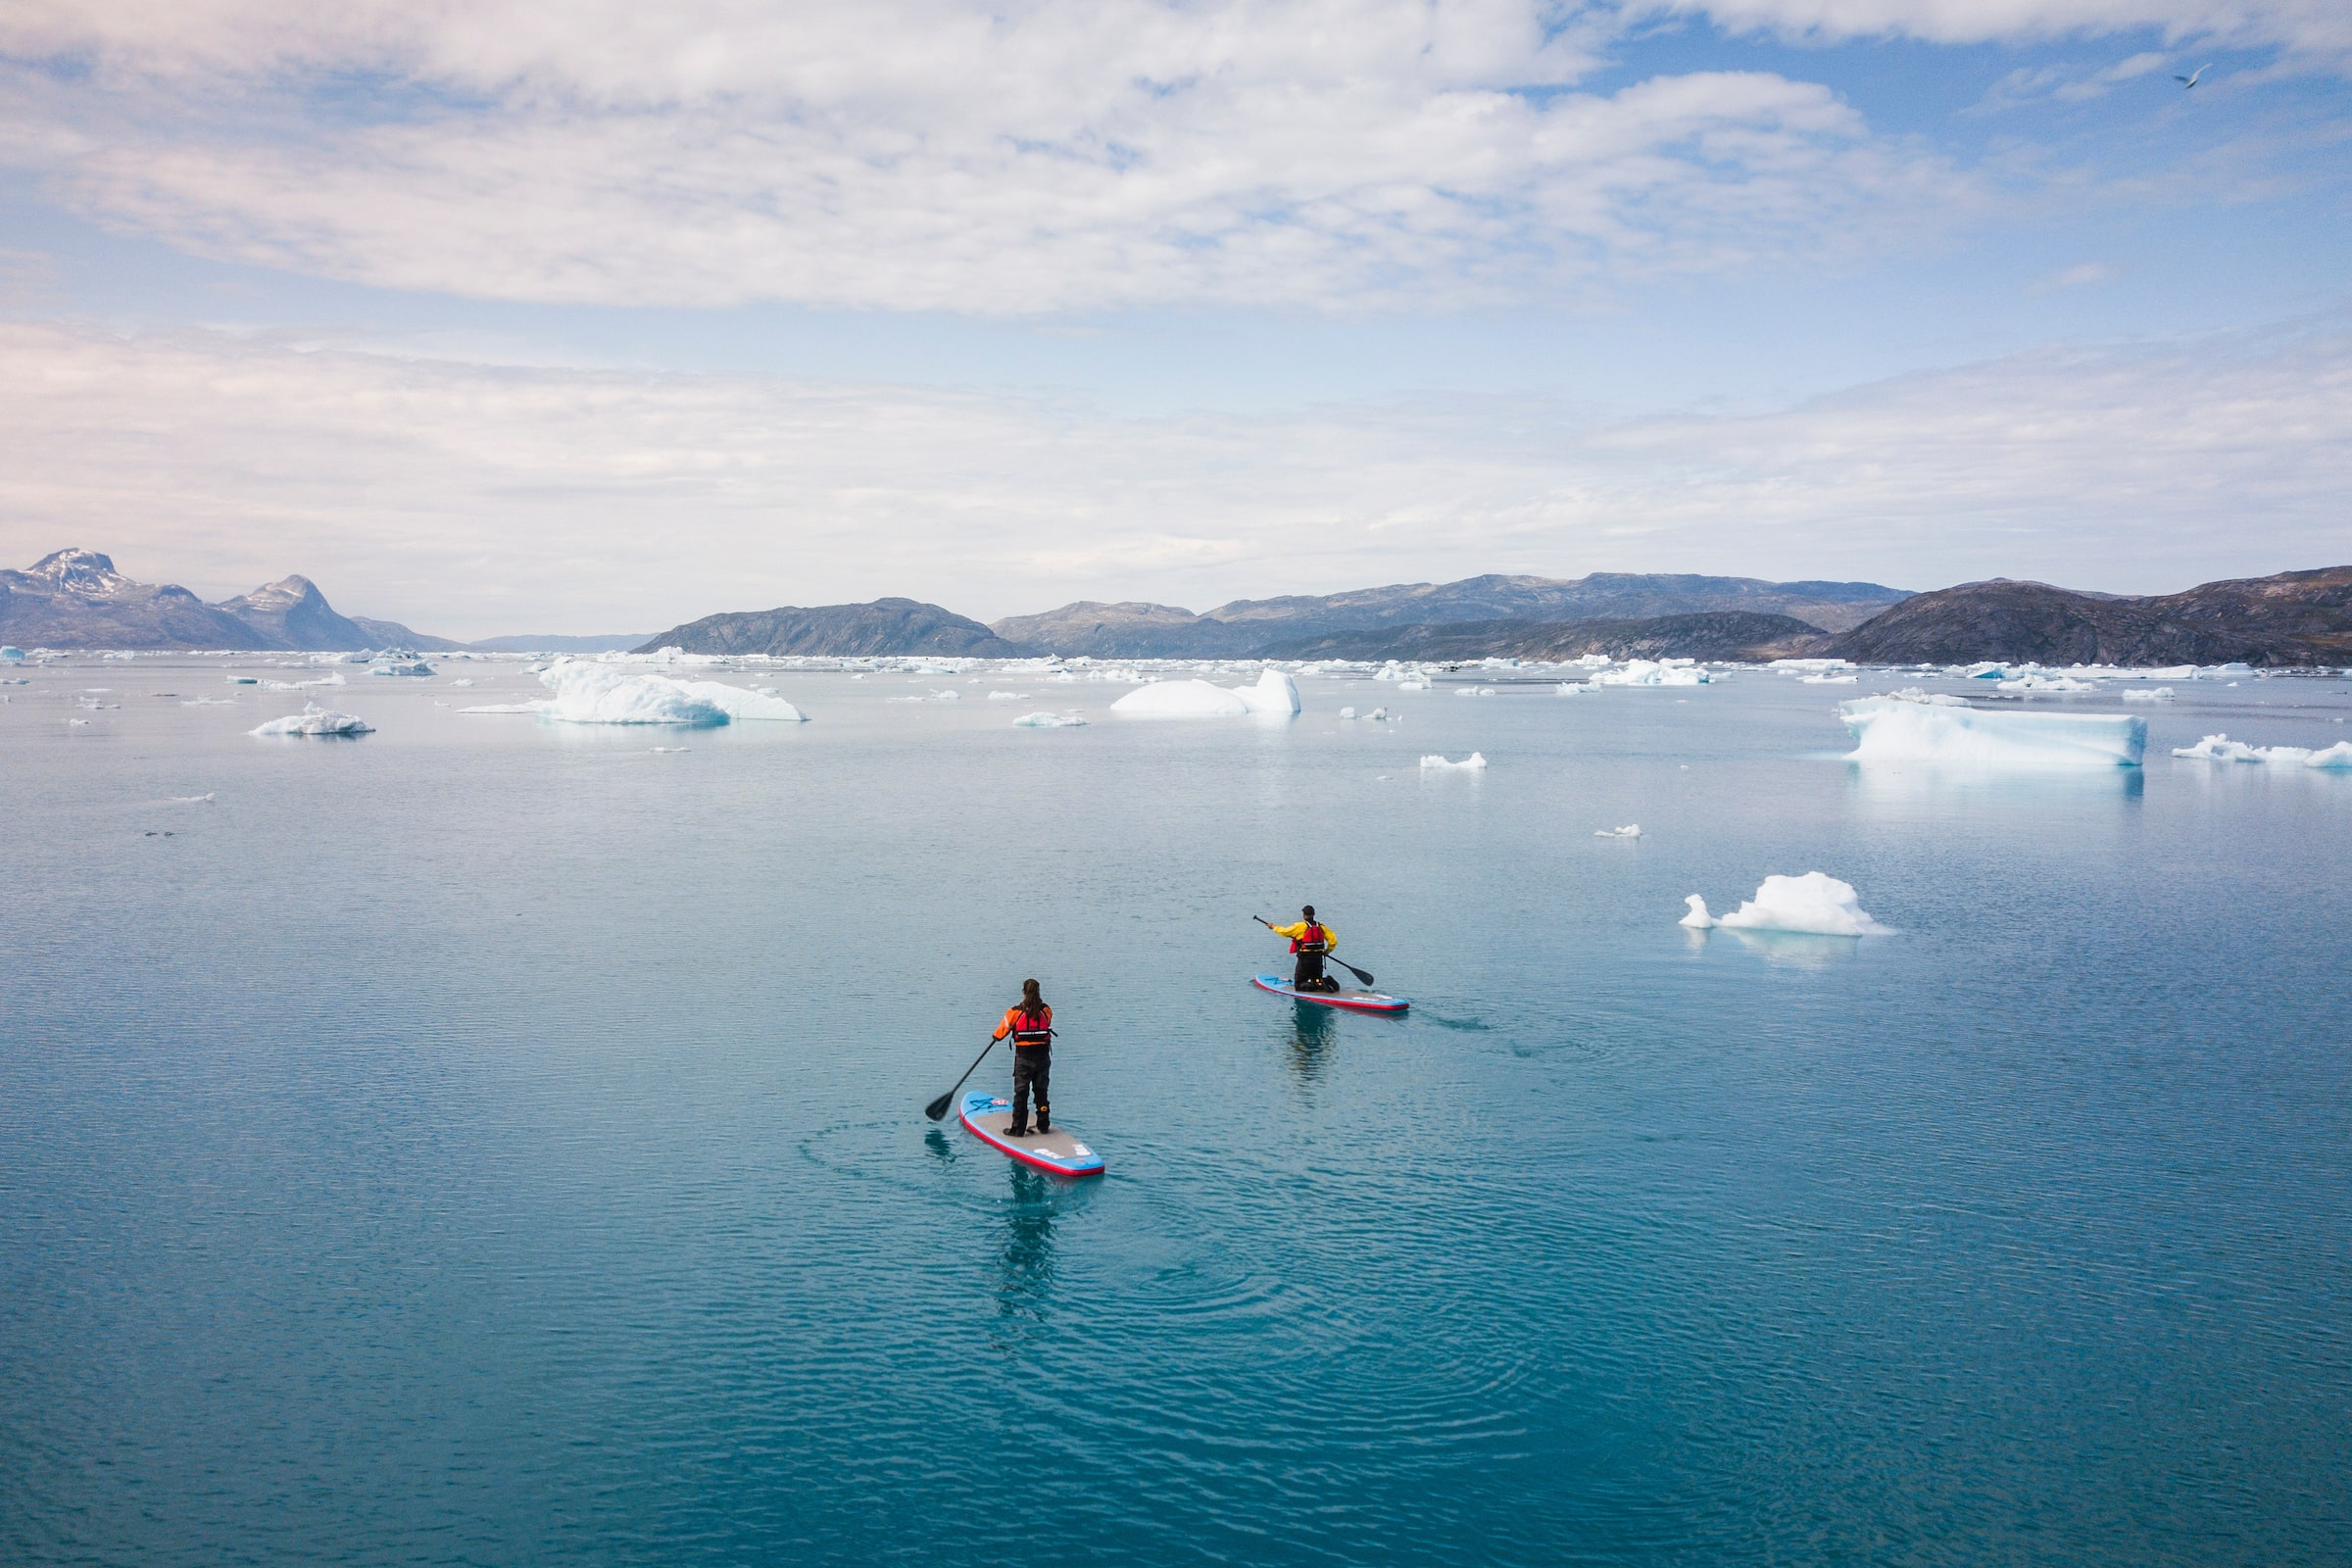 Free Riders Heading Out. Photo by Aningaaq R Carlsen - Visit Greenland